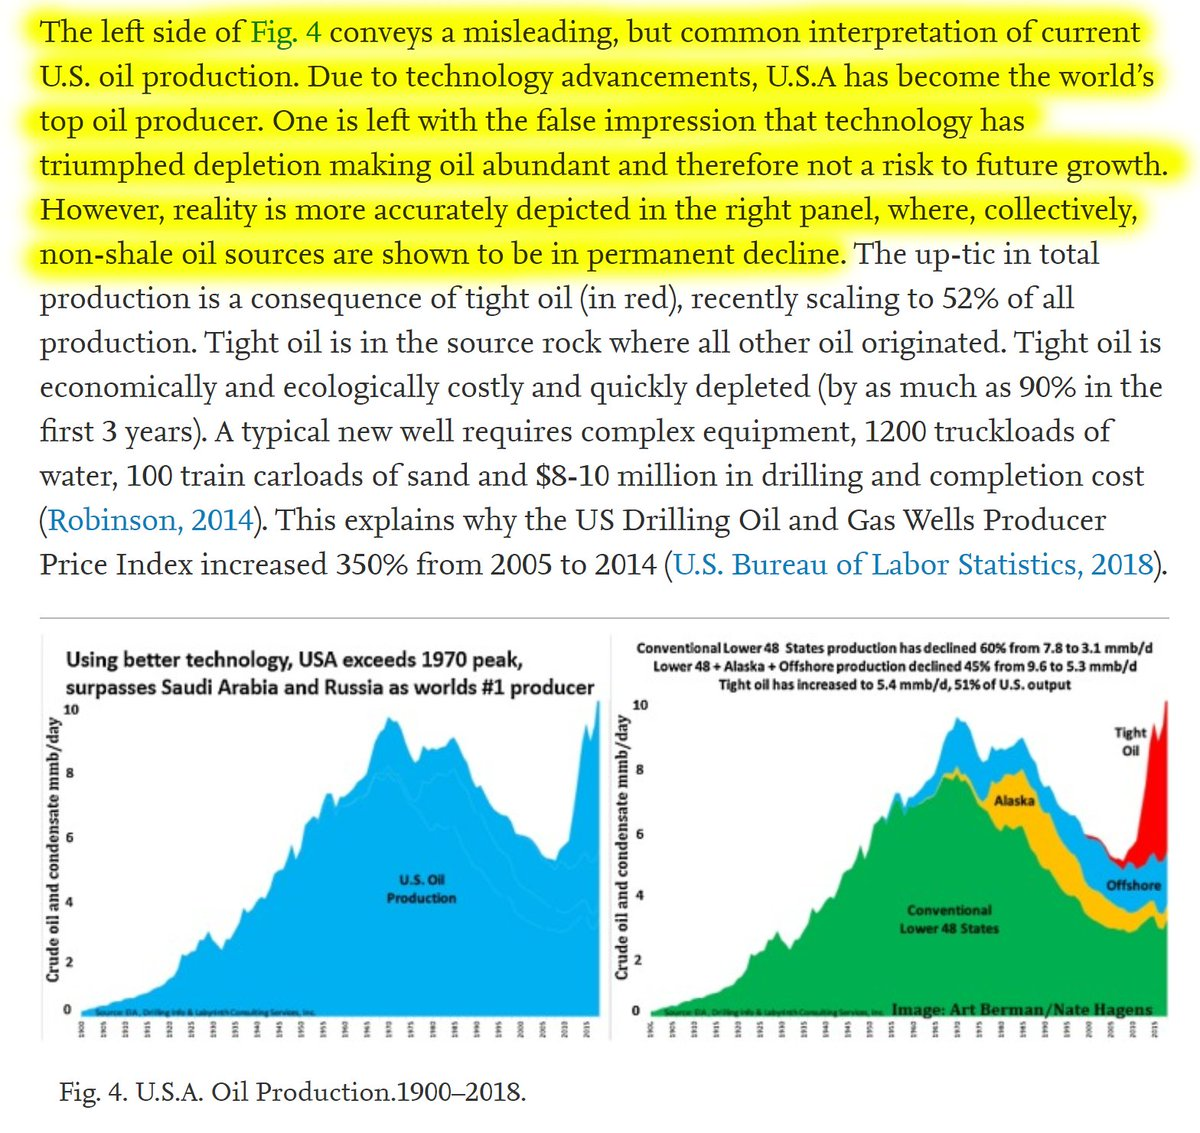 """25/60 """"One is left with the false impression that technology has triumphed depletion making oil abundant and therefore not a risk to future growth. However, reality is more accurately depicted in the right panel: non-shale oil sources are shown to be in permanent decline."""""""